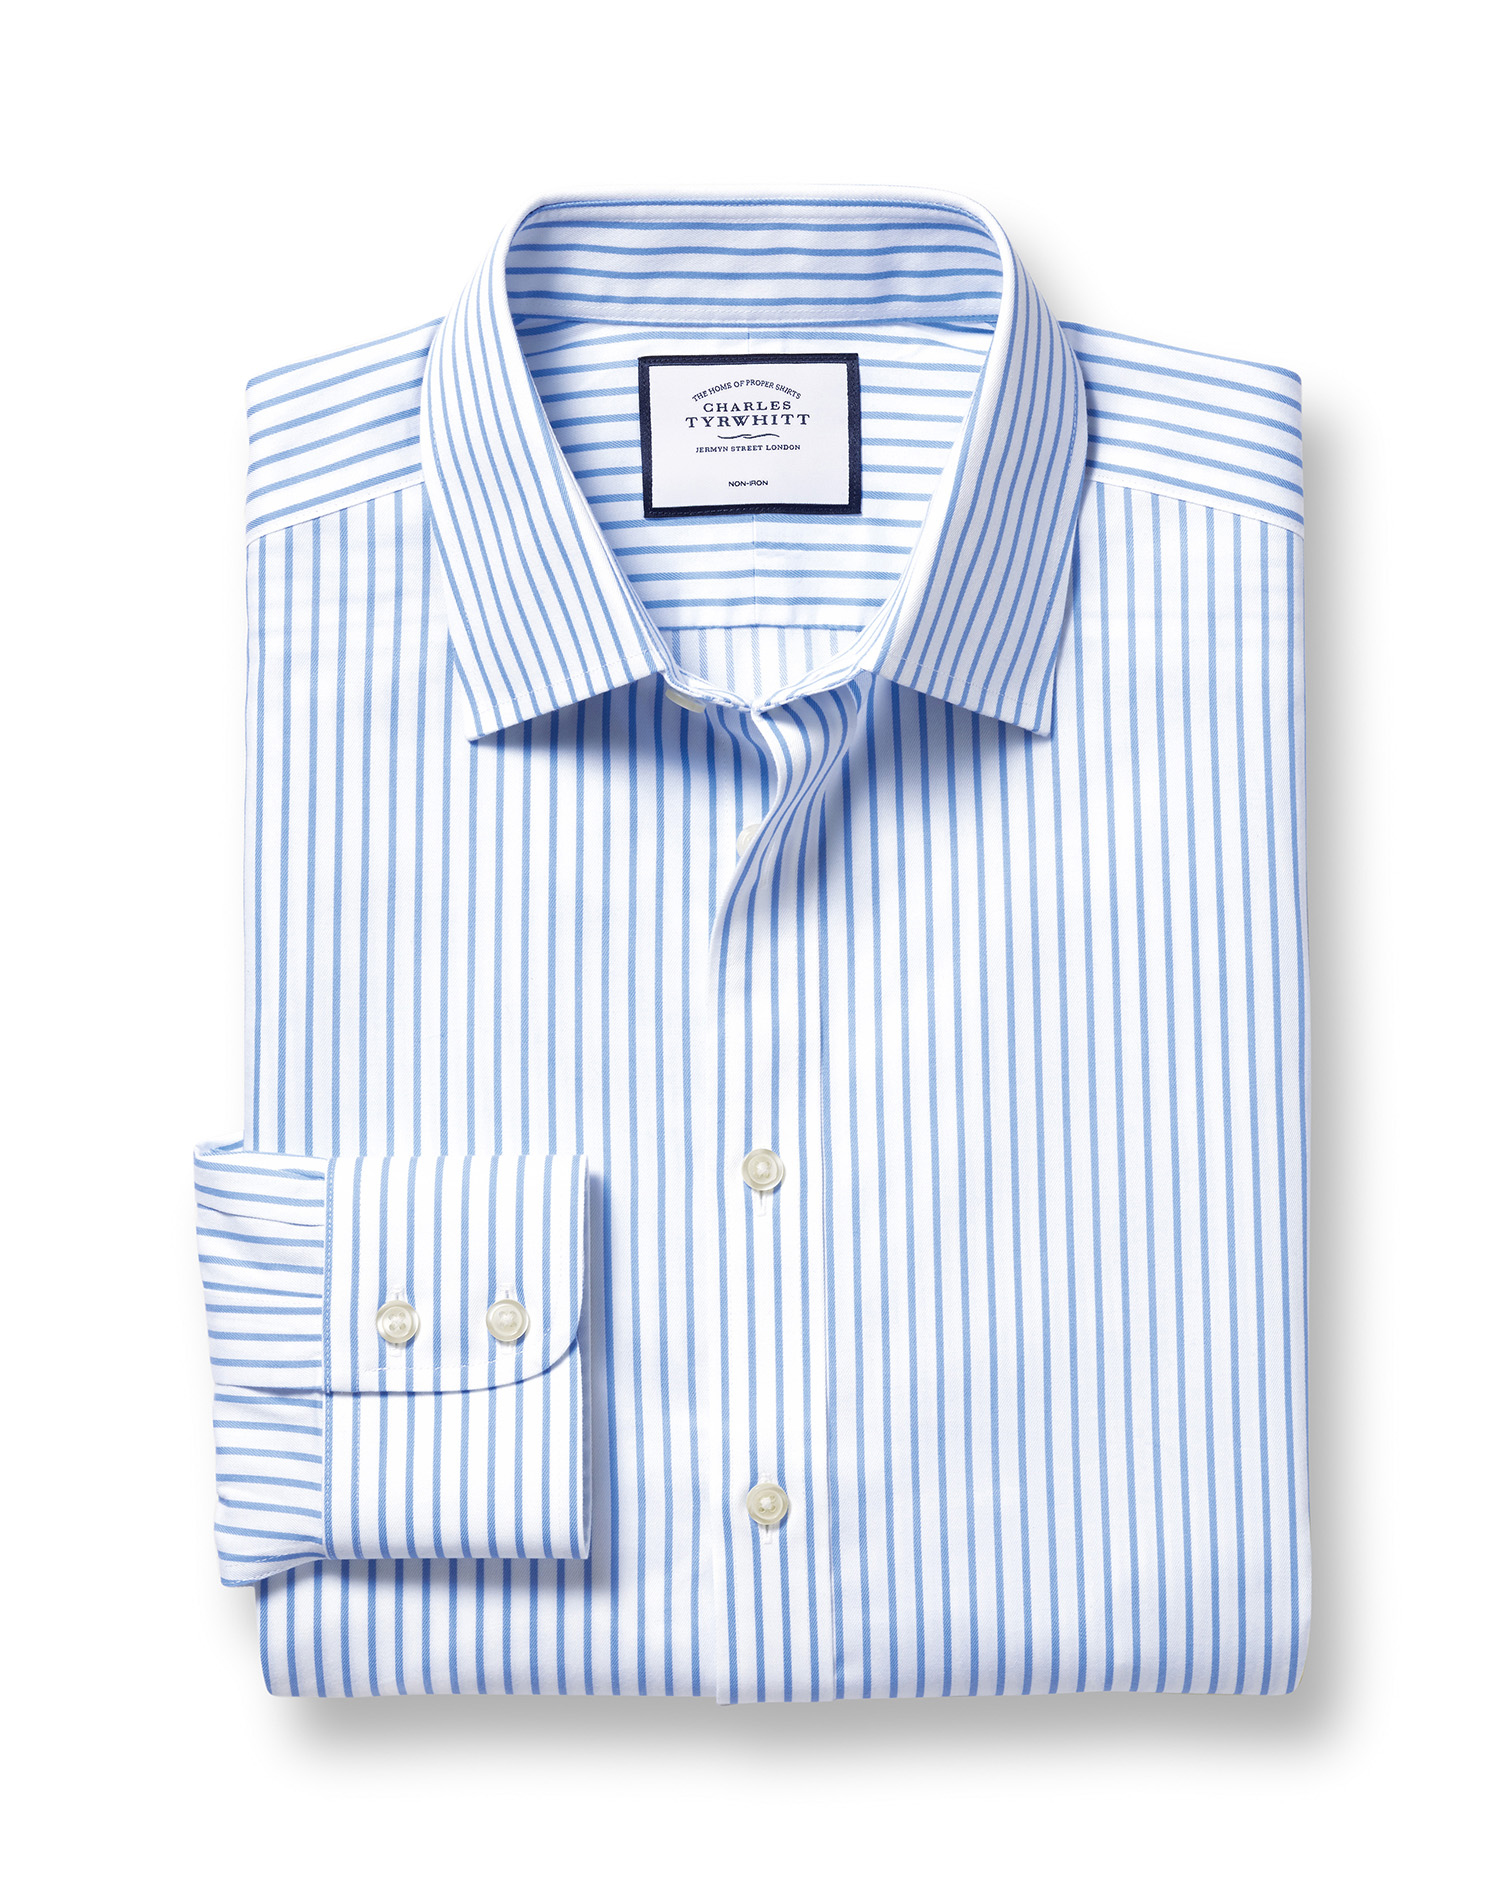 Extra Slim Fit Non-Iron Twill White and Sky Blue Stripe Cotton Formal Shirt Single Cuff Size 16.5/35